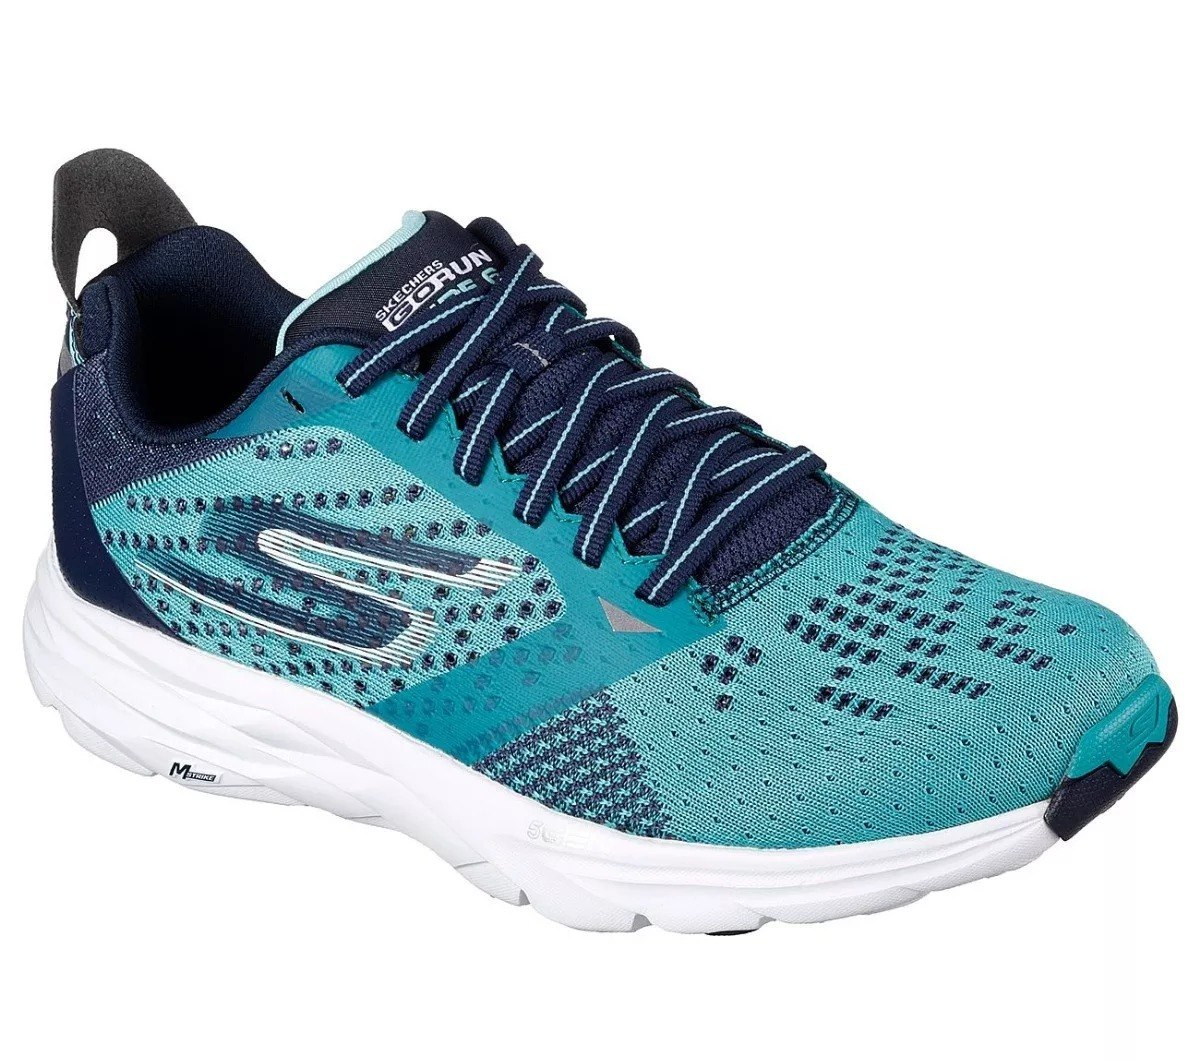 tenis skechers go run ride 6 original com nota. Carregando zoom. 9a21a0ad8e6ed